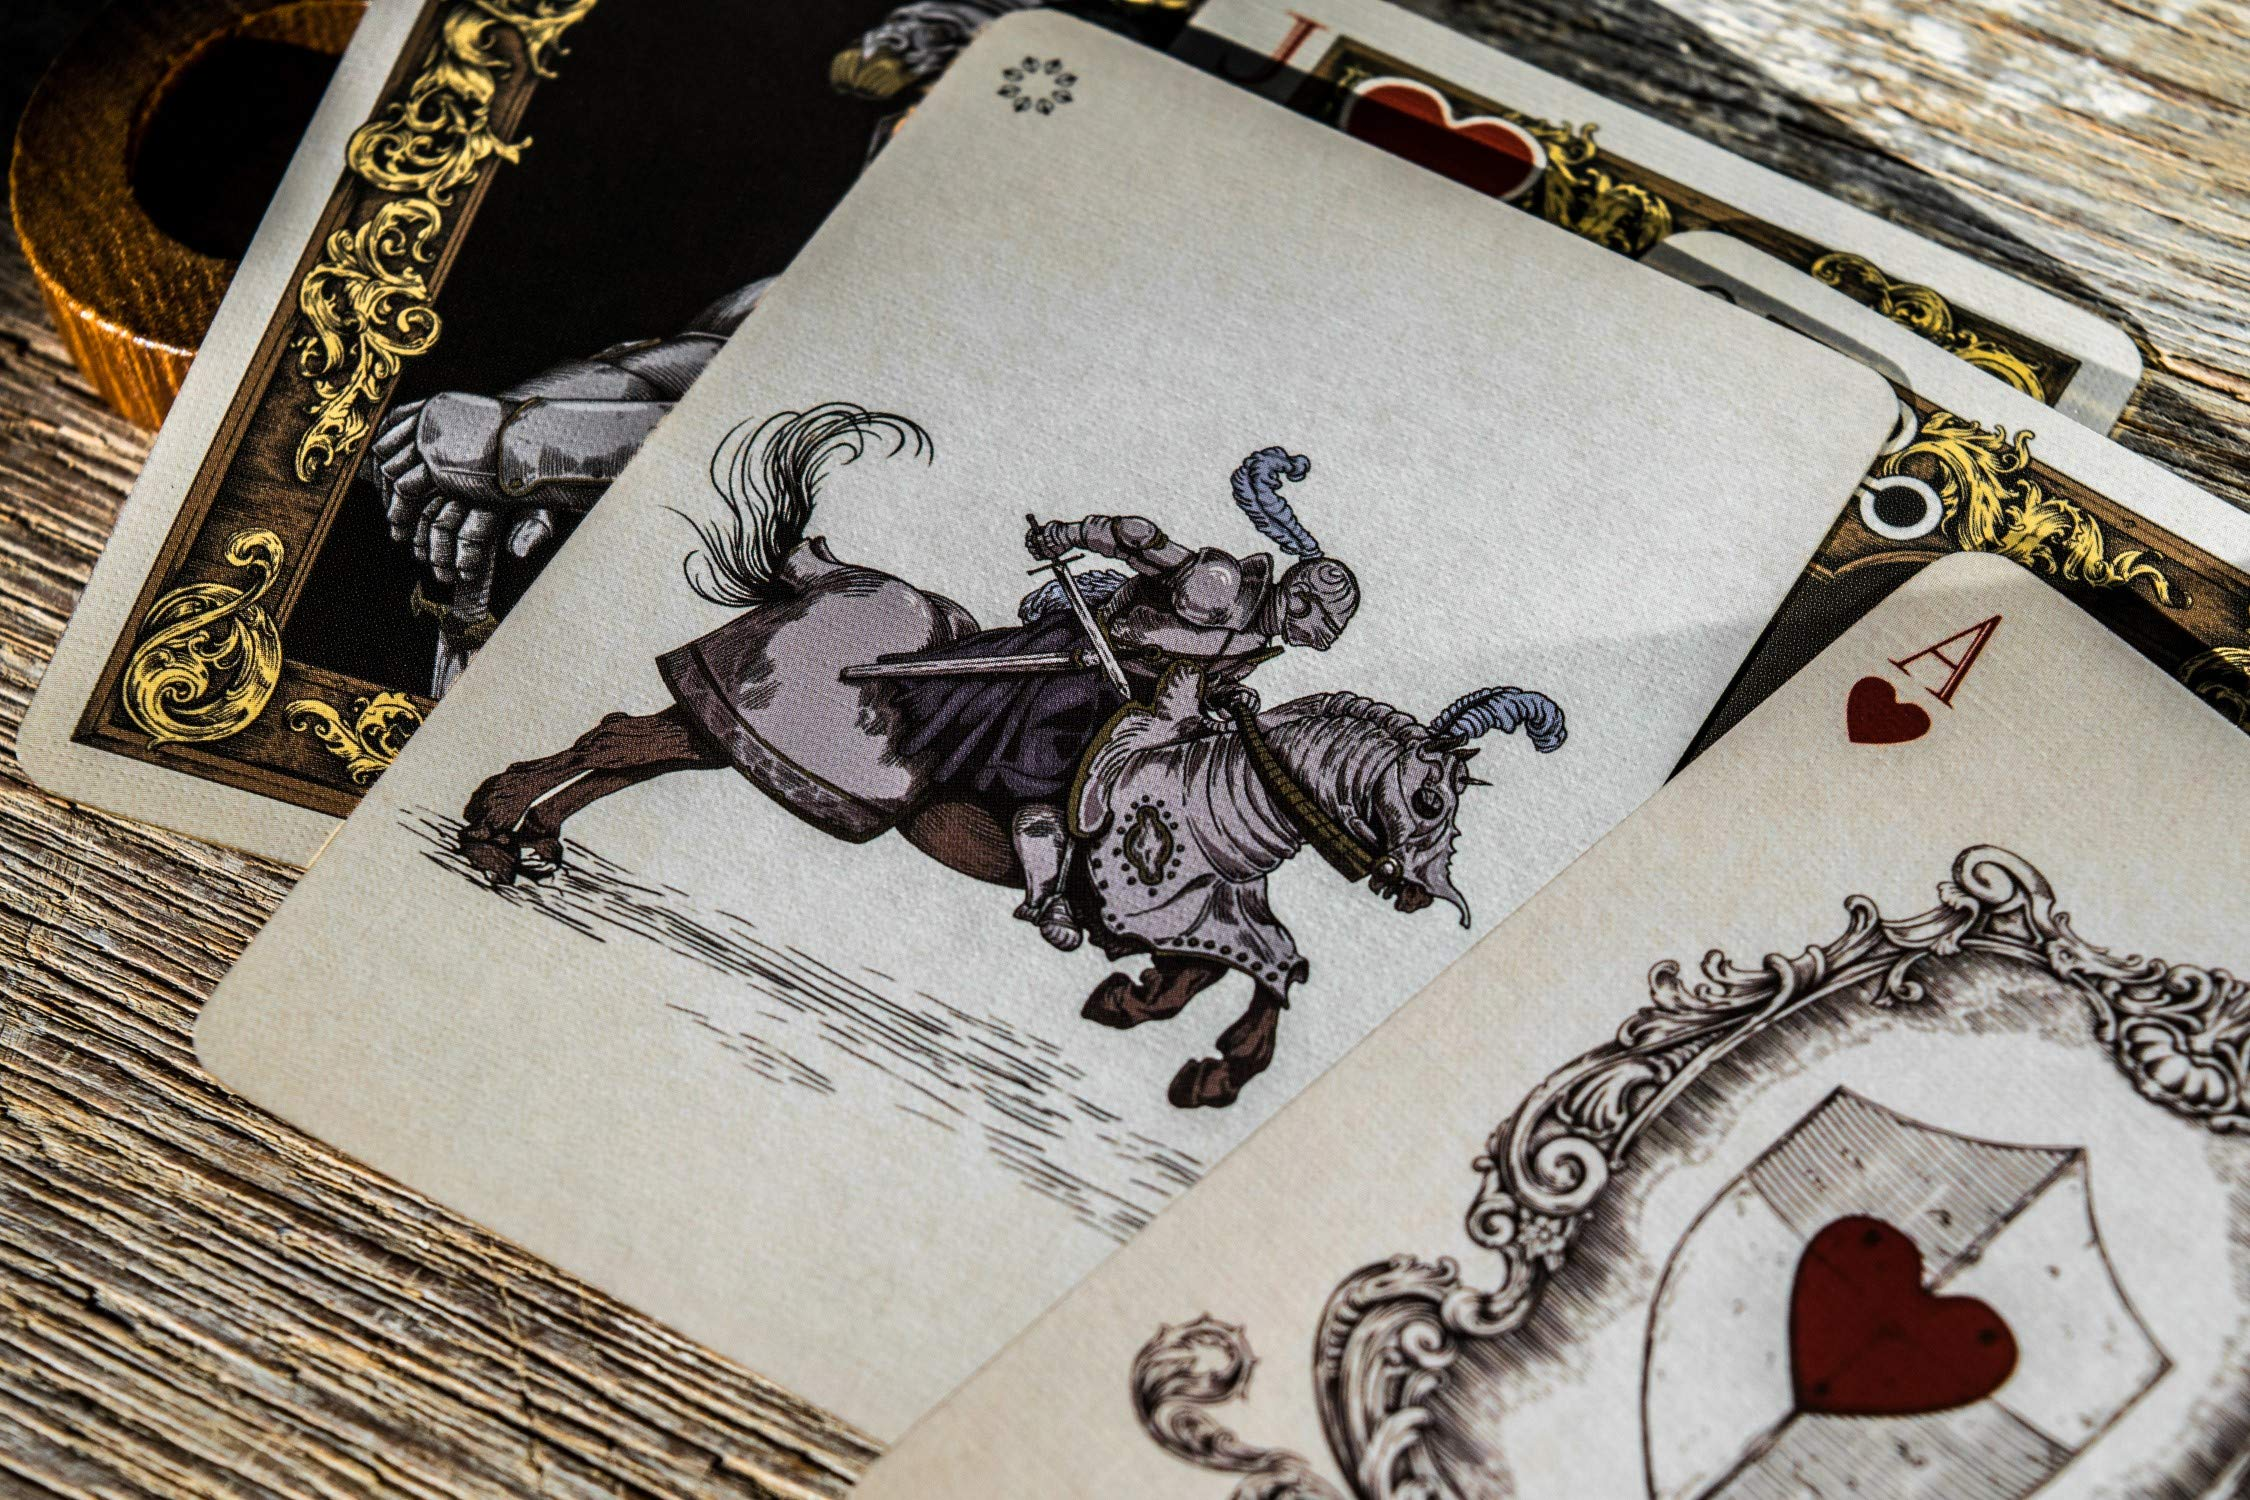 Medieval Royal Playing Cards, Gold Deck of Cards, Cool Magic Cards, Best Poker Cards, Unique Illustrated Foil Colors for Kids & Adults, Playing Card Decks Games, Standard Size by Elephant Playing Cards (Image #9)